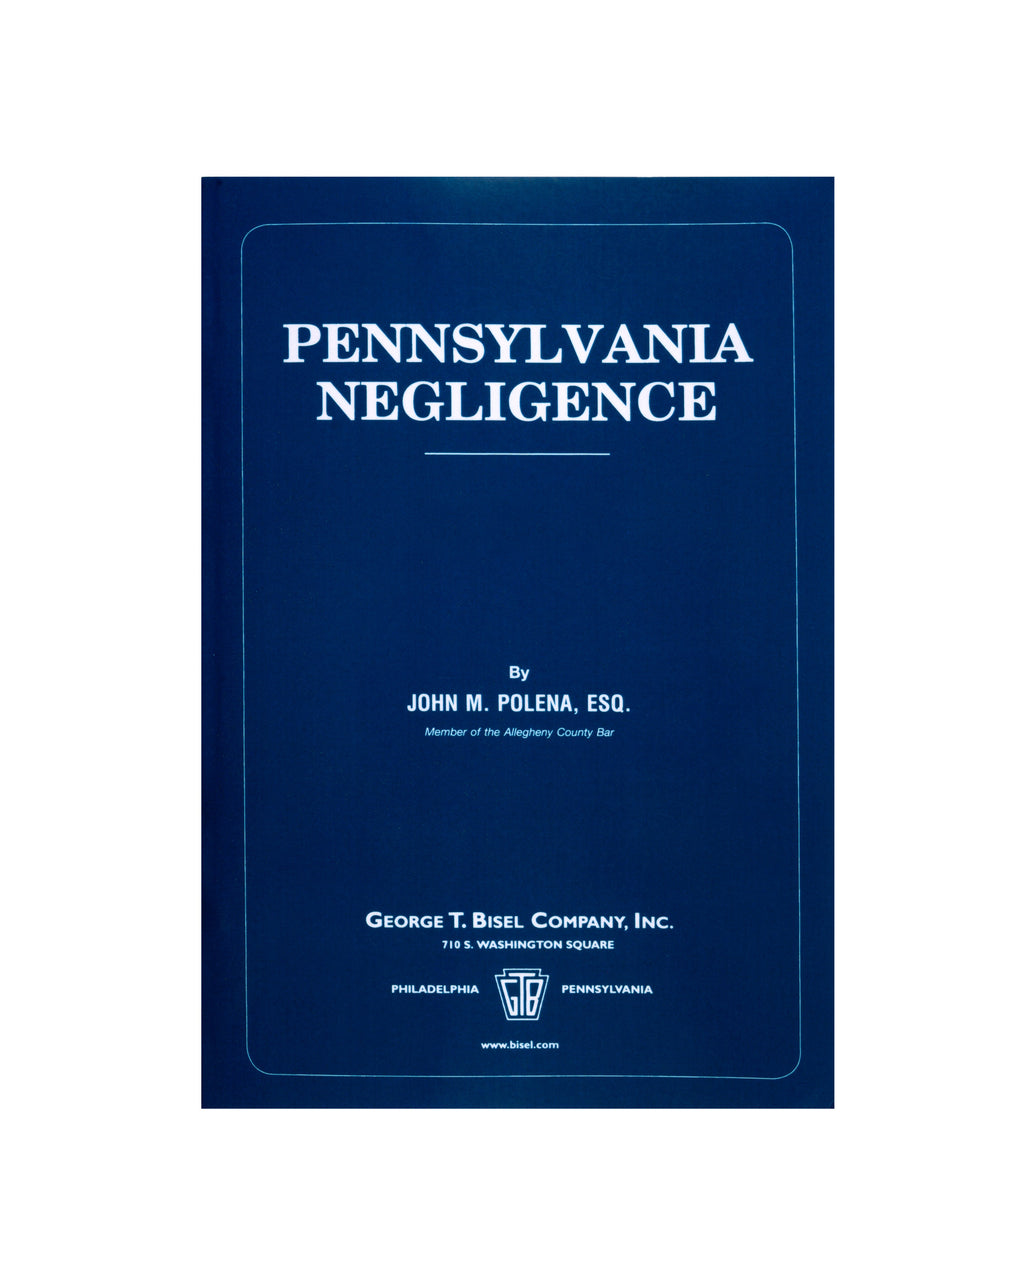 Pennsylvania Negligence